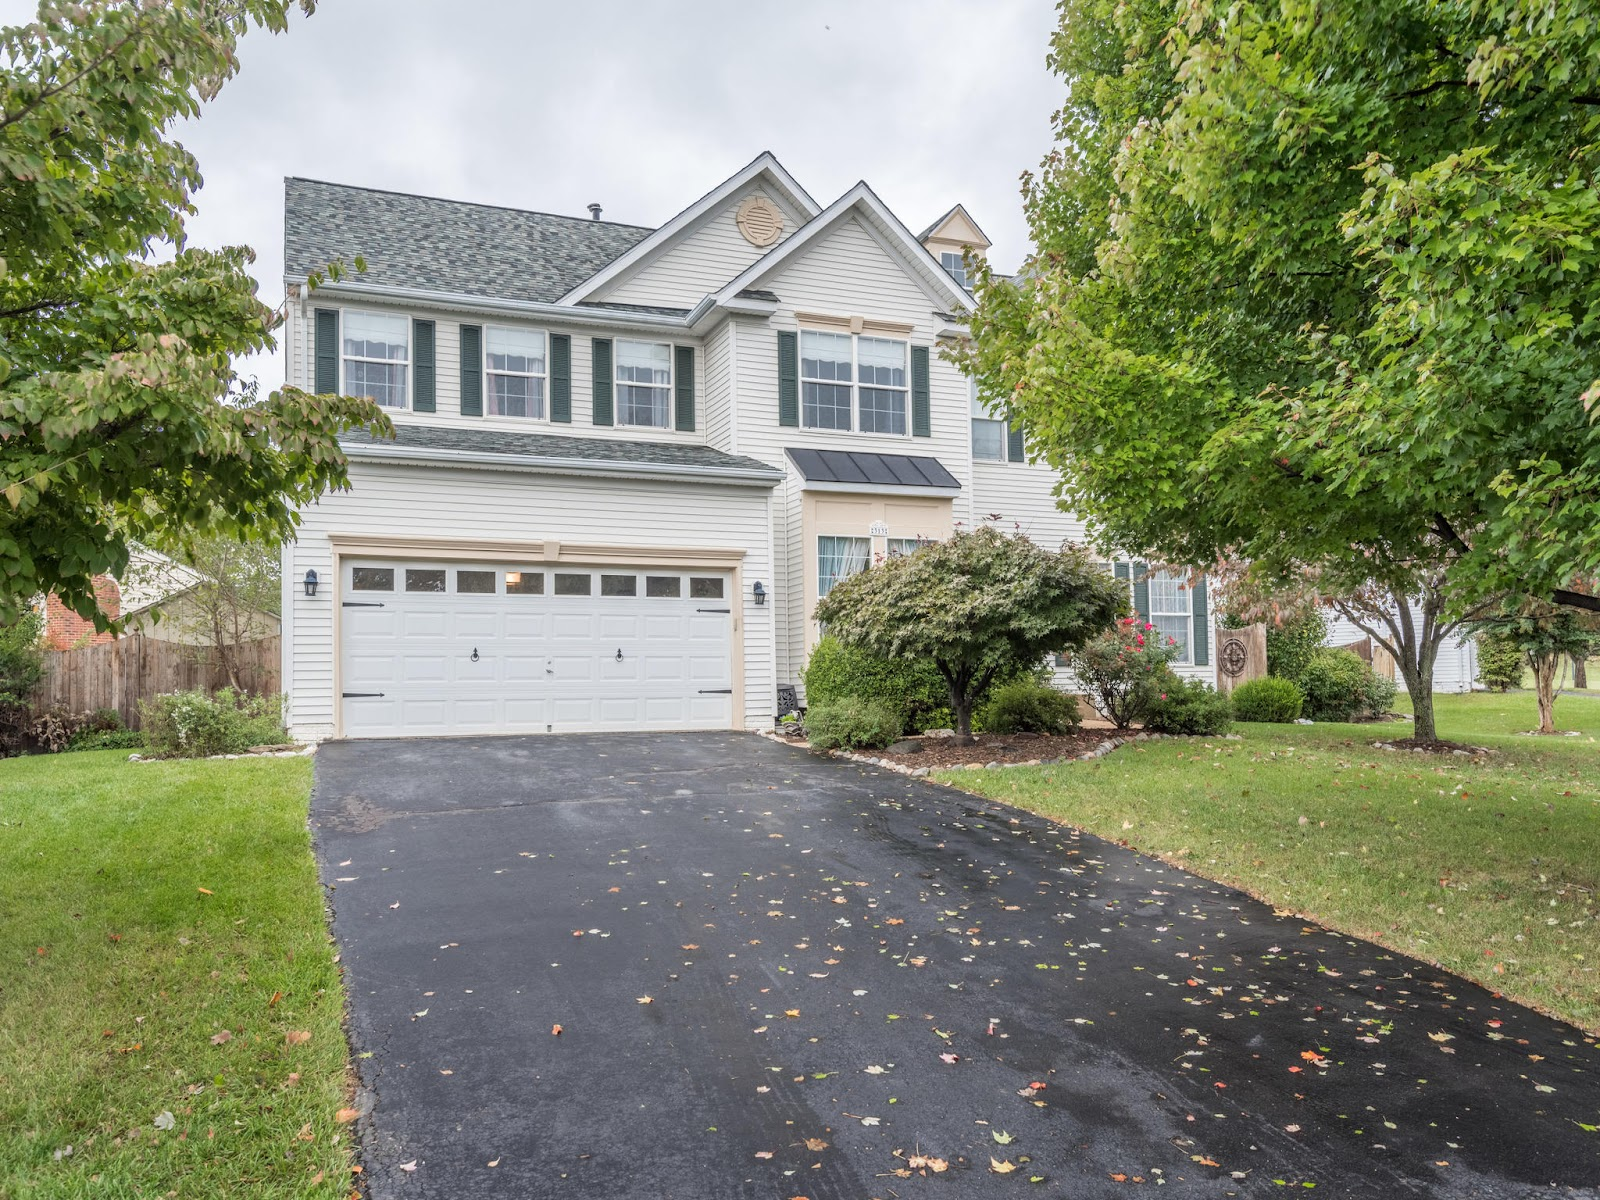 313 CROSMAN CT, PURCELLVILLE, VA 20132 _1